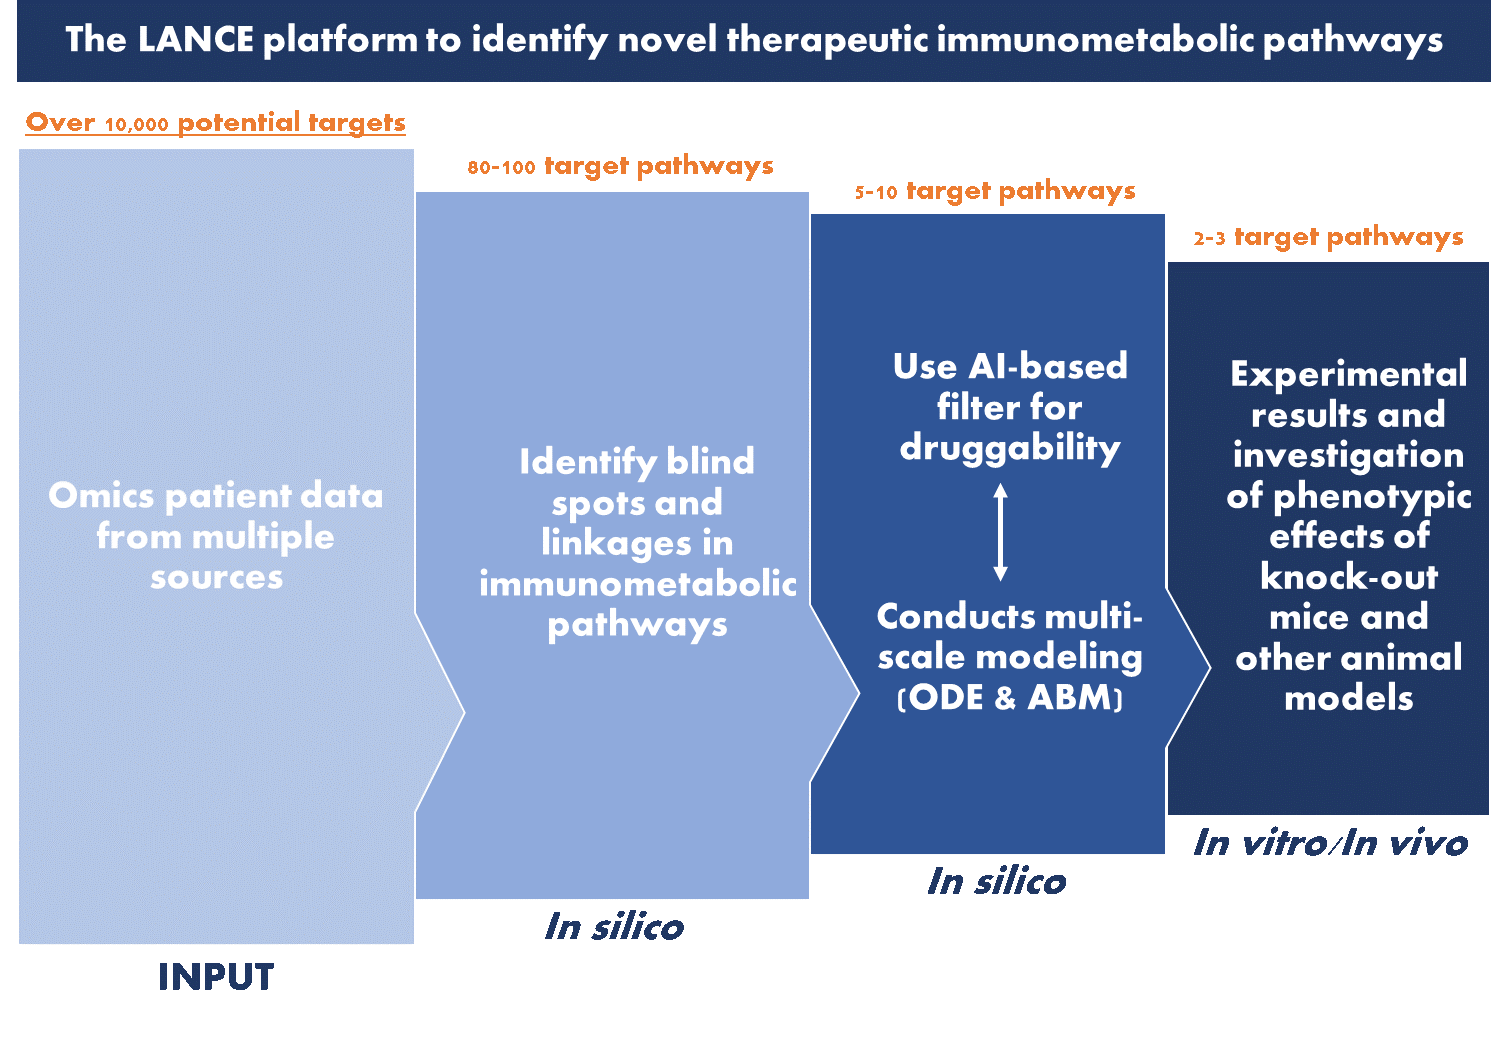 The LANCE platform to identify novel therapeutic immunometabolic pathways